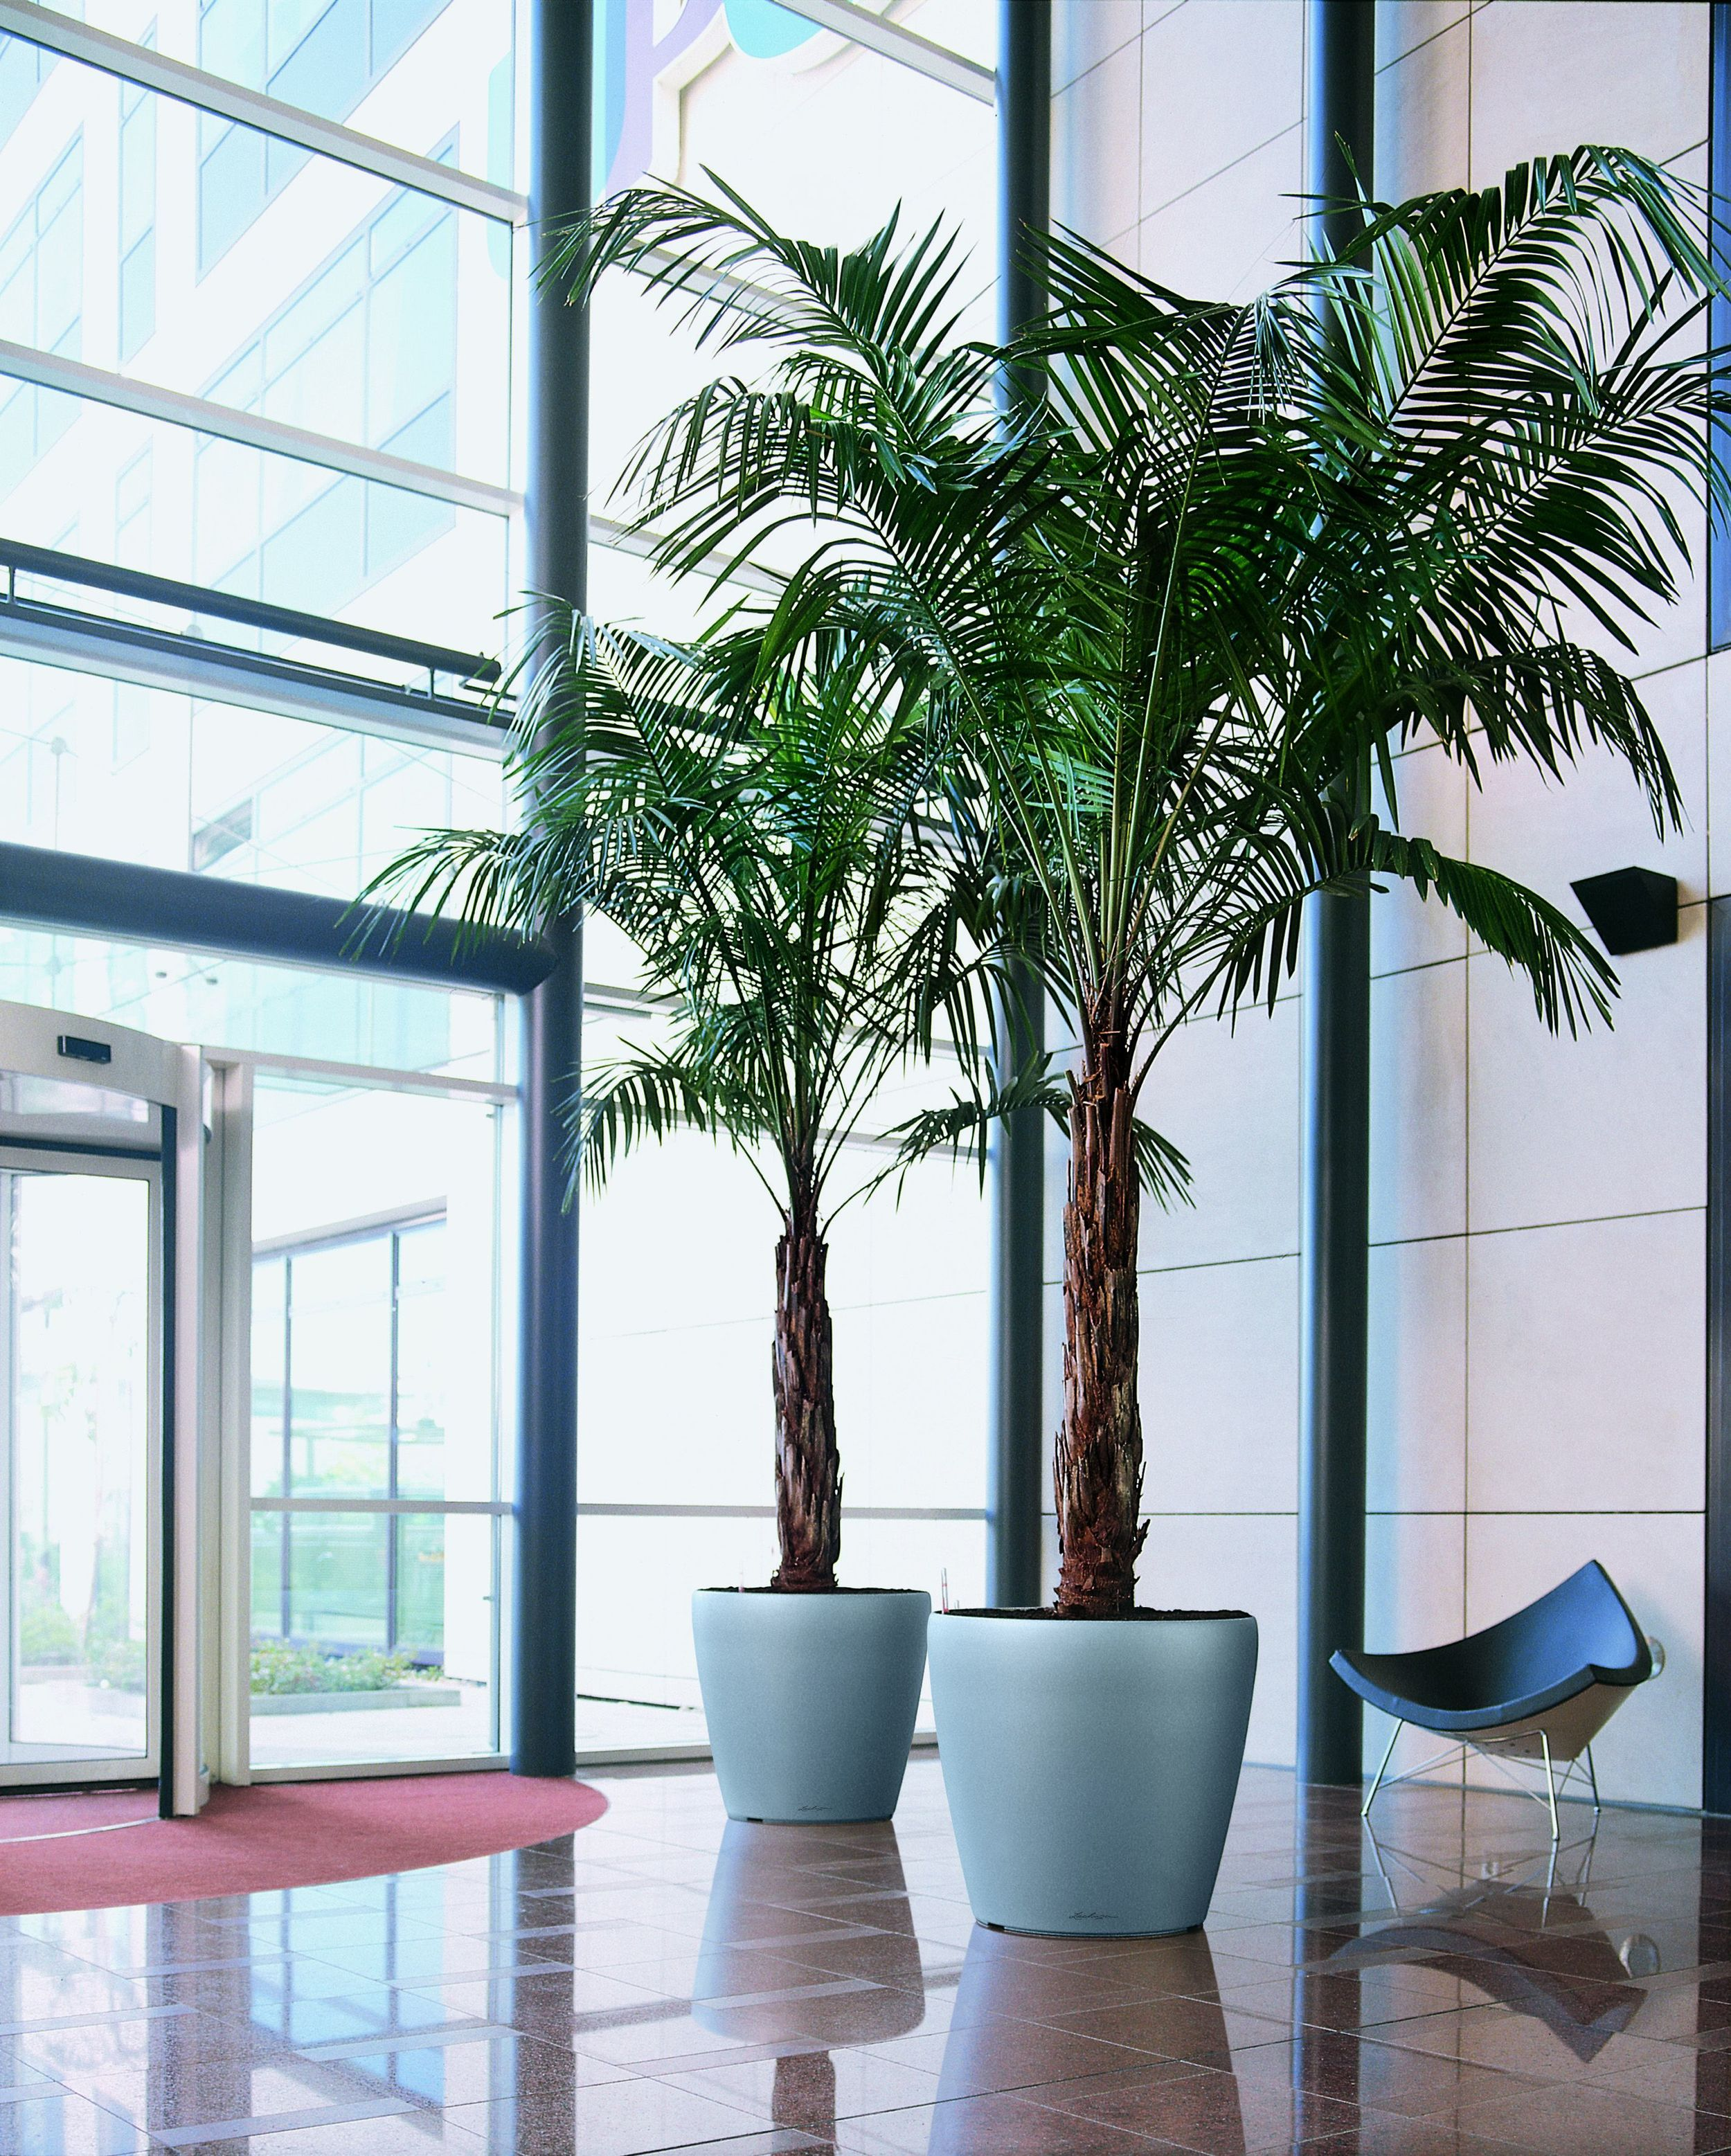 Classico Silver in atrium with palm trees .jpg